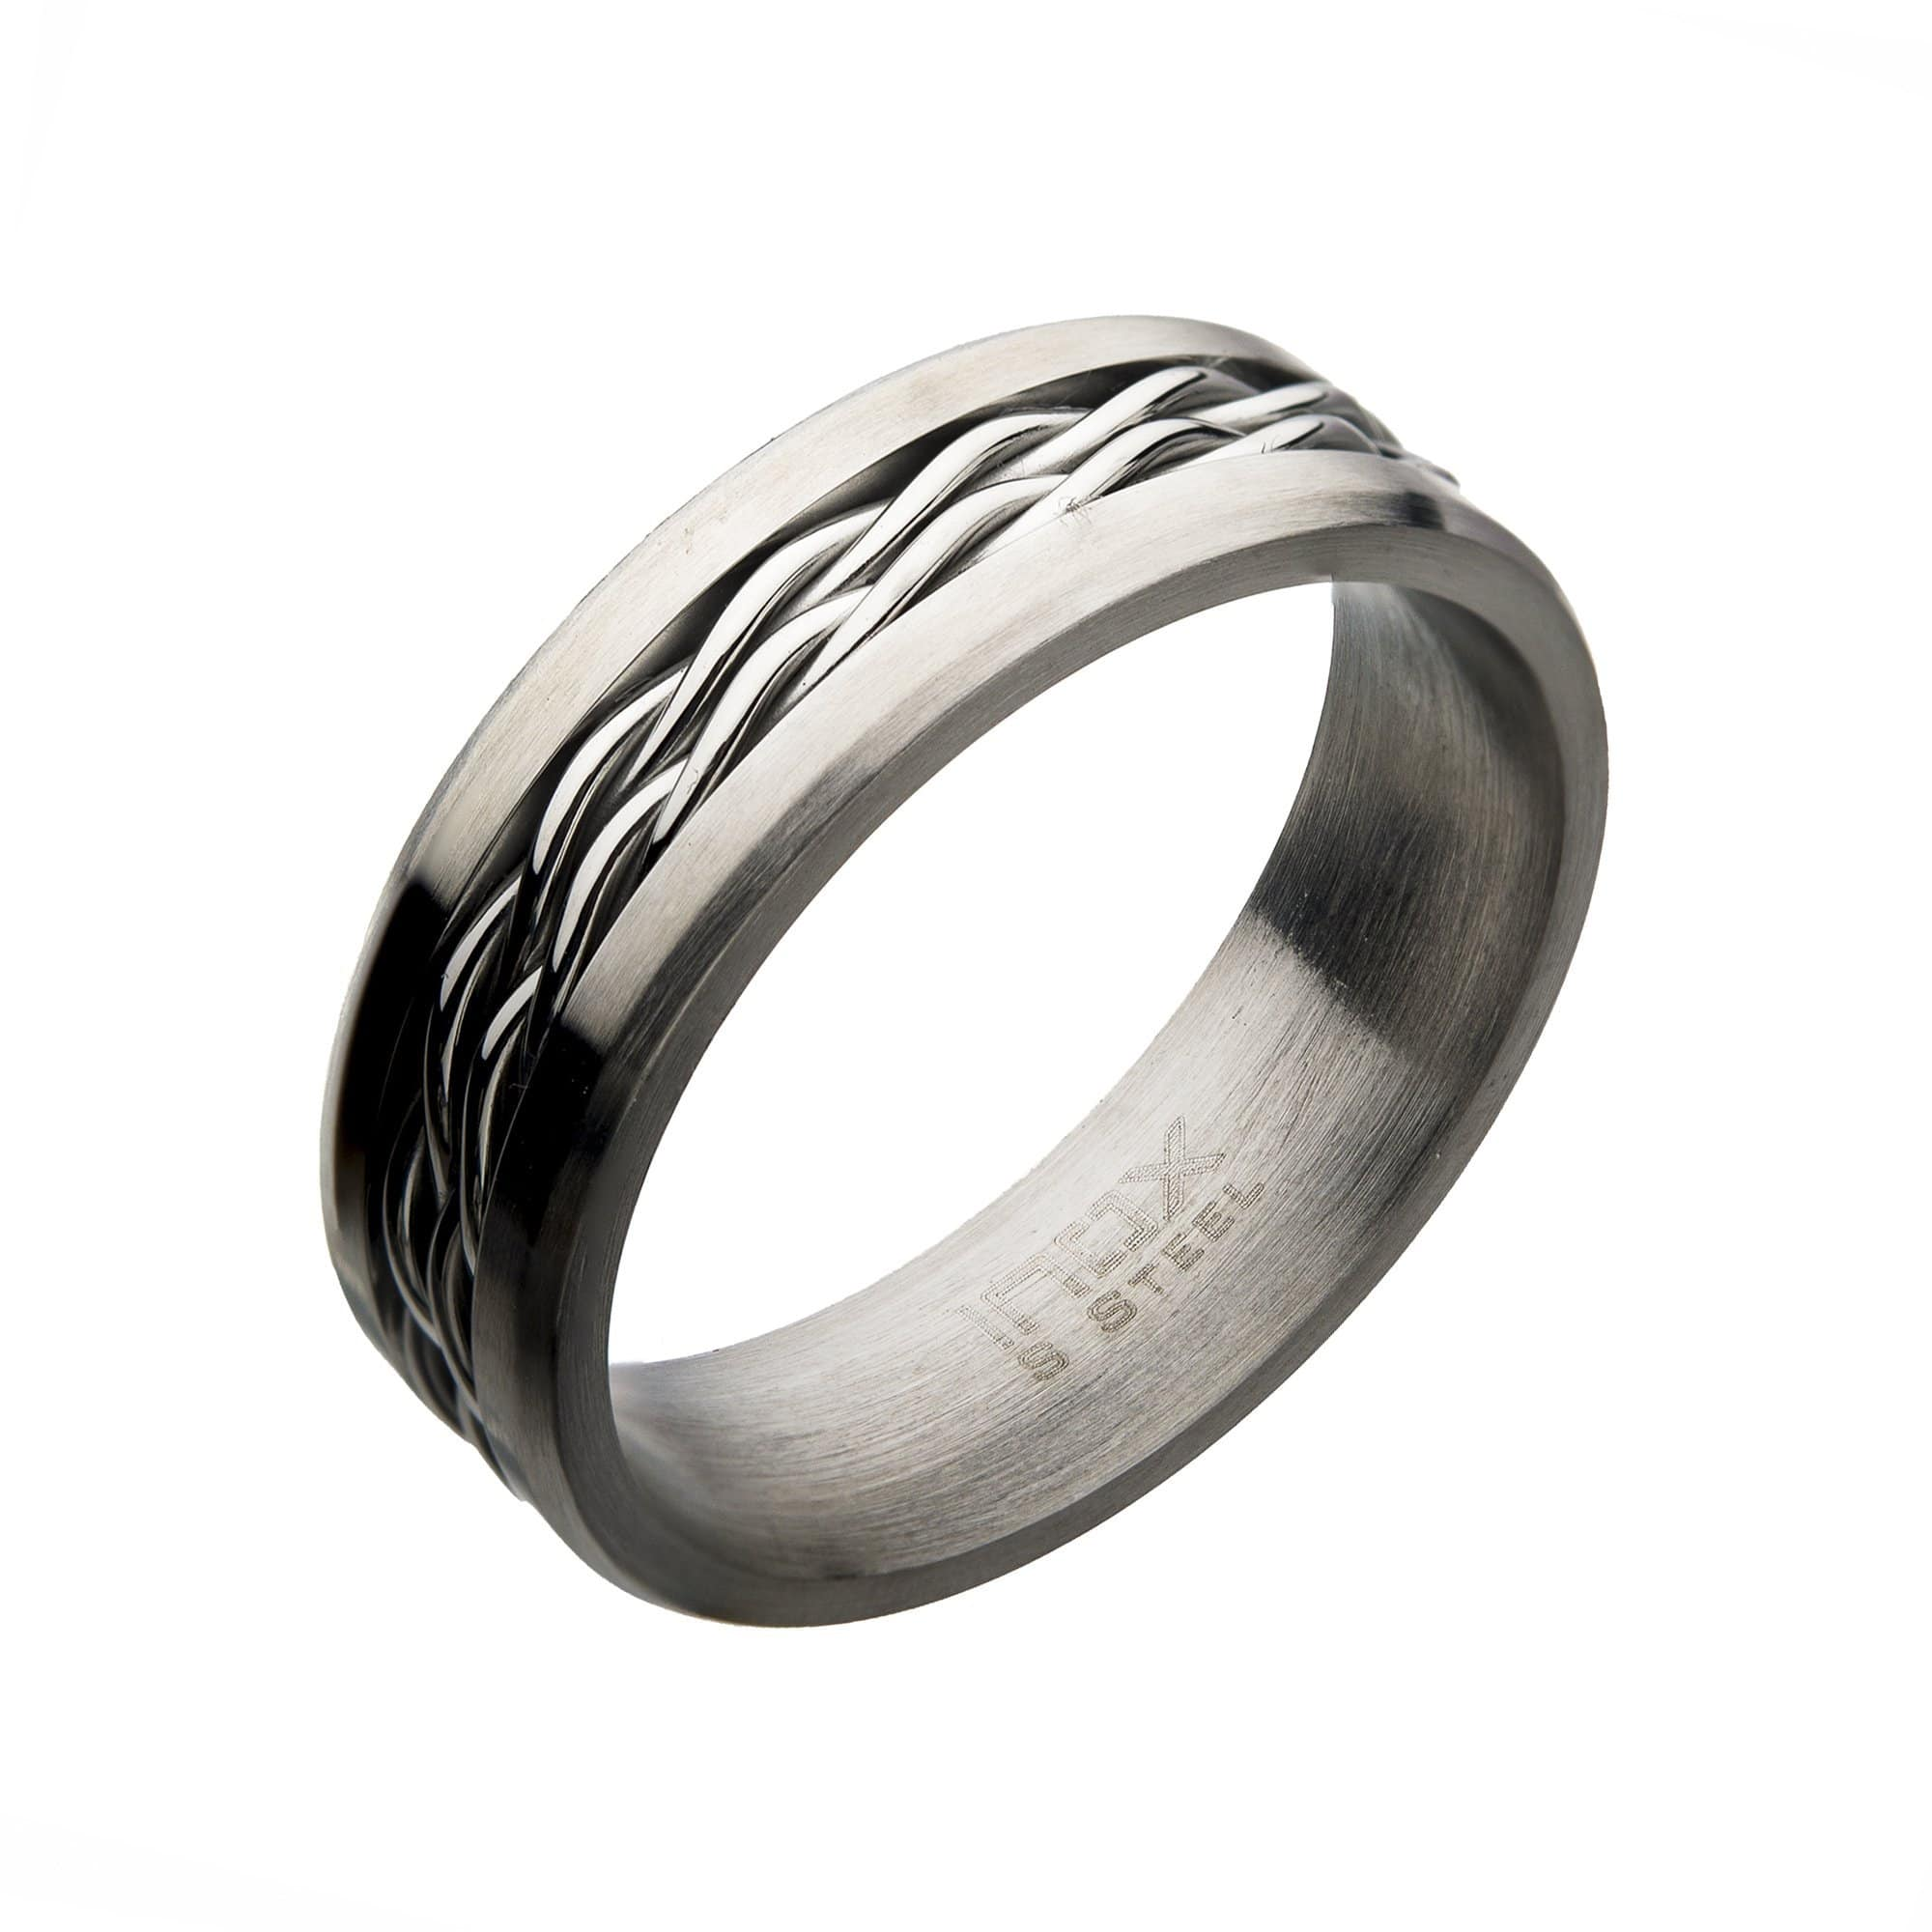 Silver Stainless Steel with Intertwined Cables 7mm Band Ring